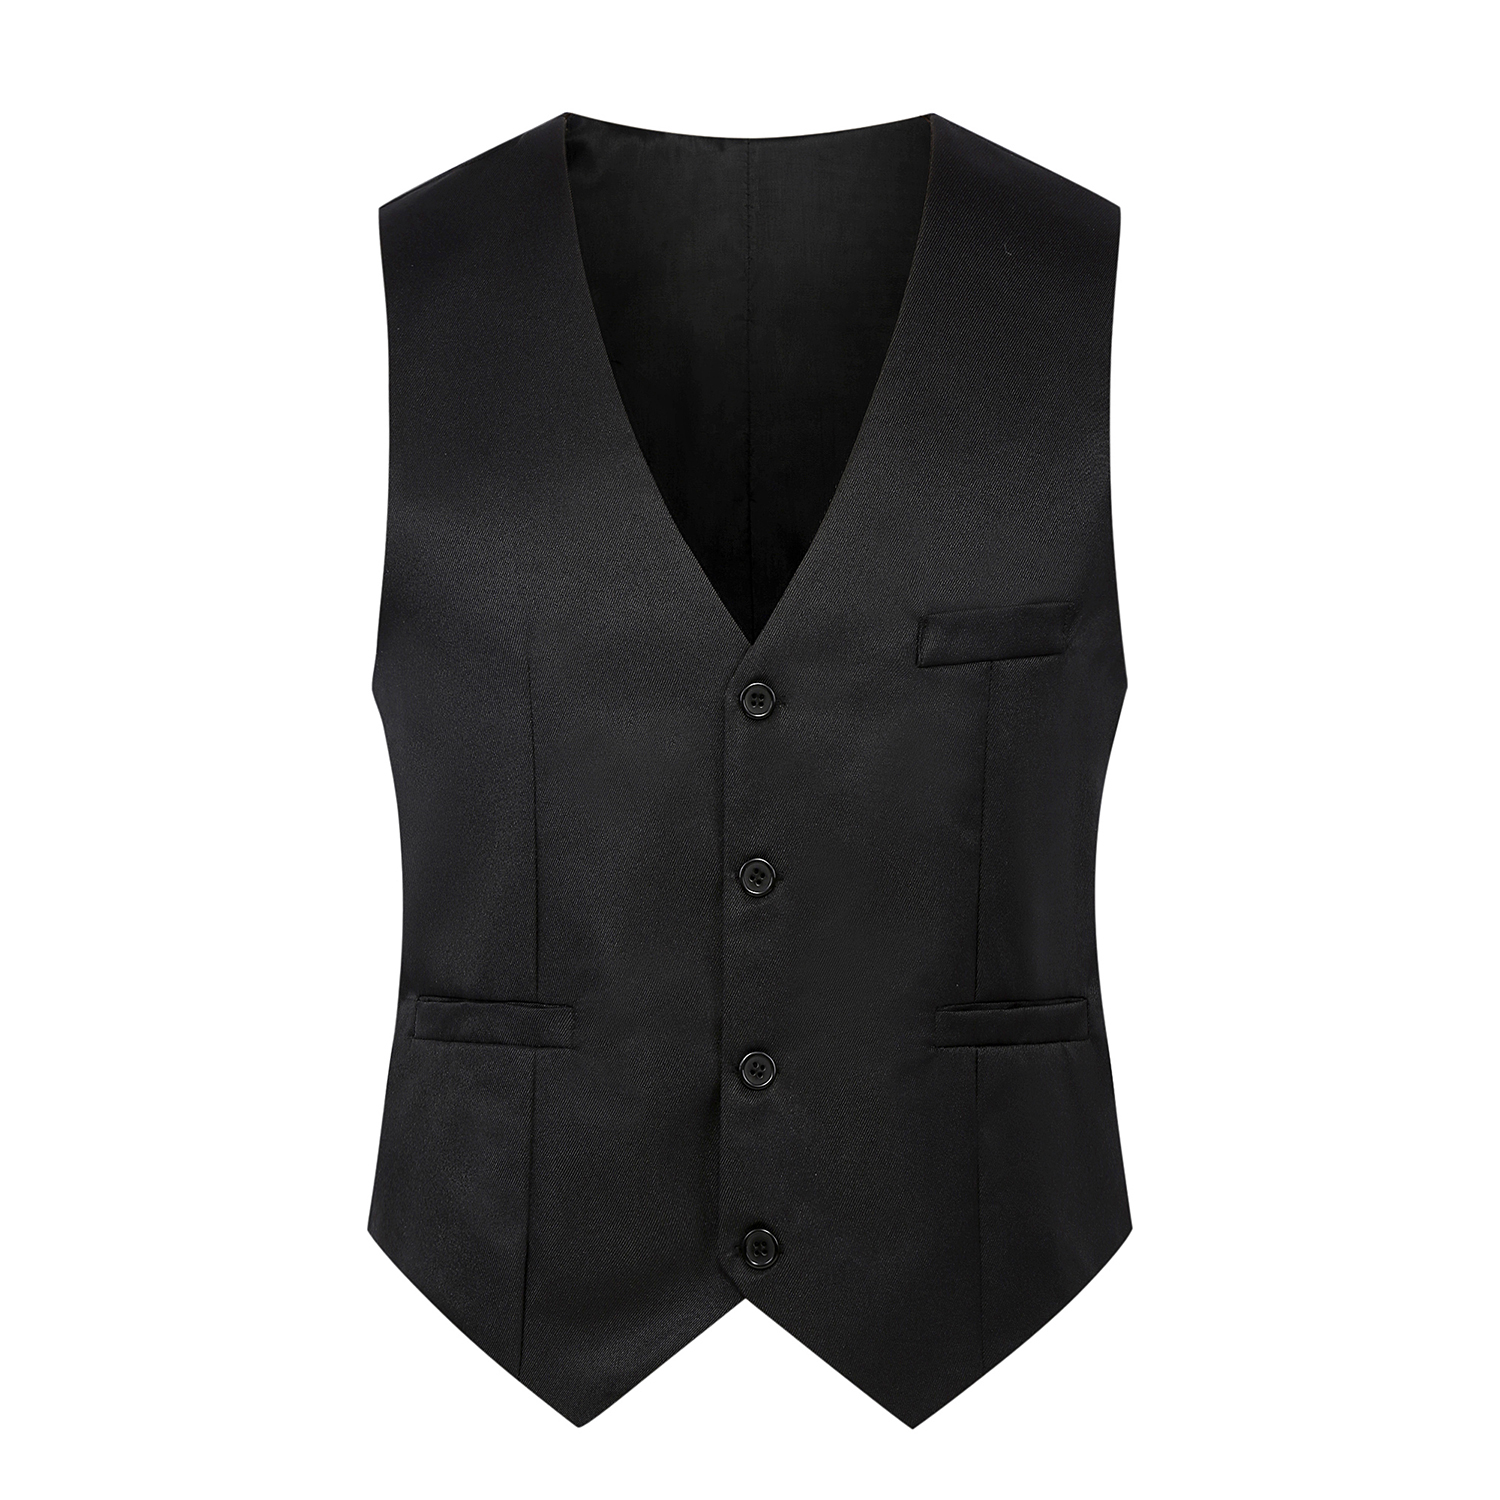 2019 Autumn New Formal Men's Black Vest XS-4XL